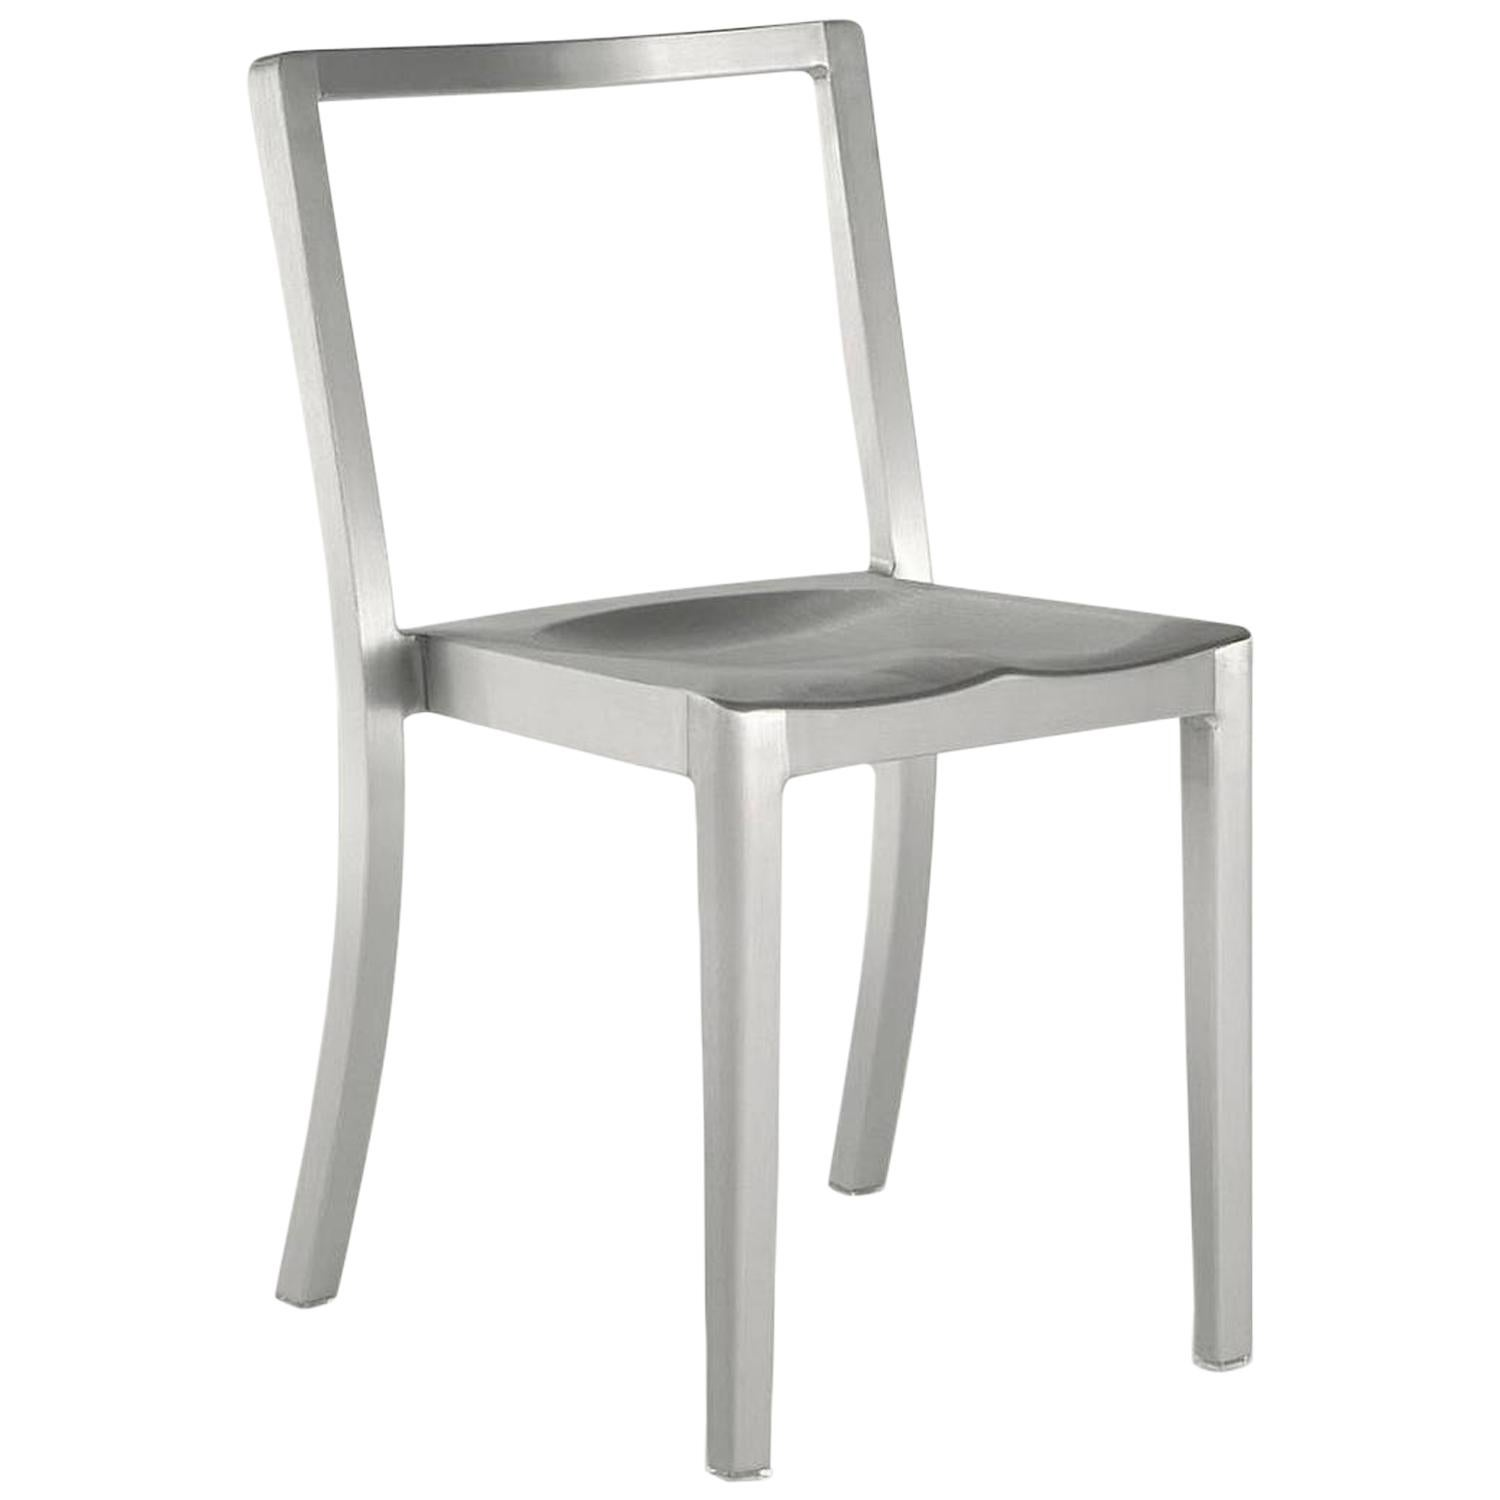 Famous Chair Emeco Icon Chair In Brushed Aluminum By Philippe Starck